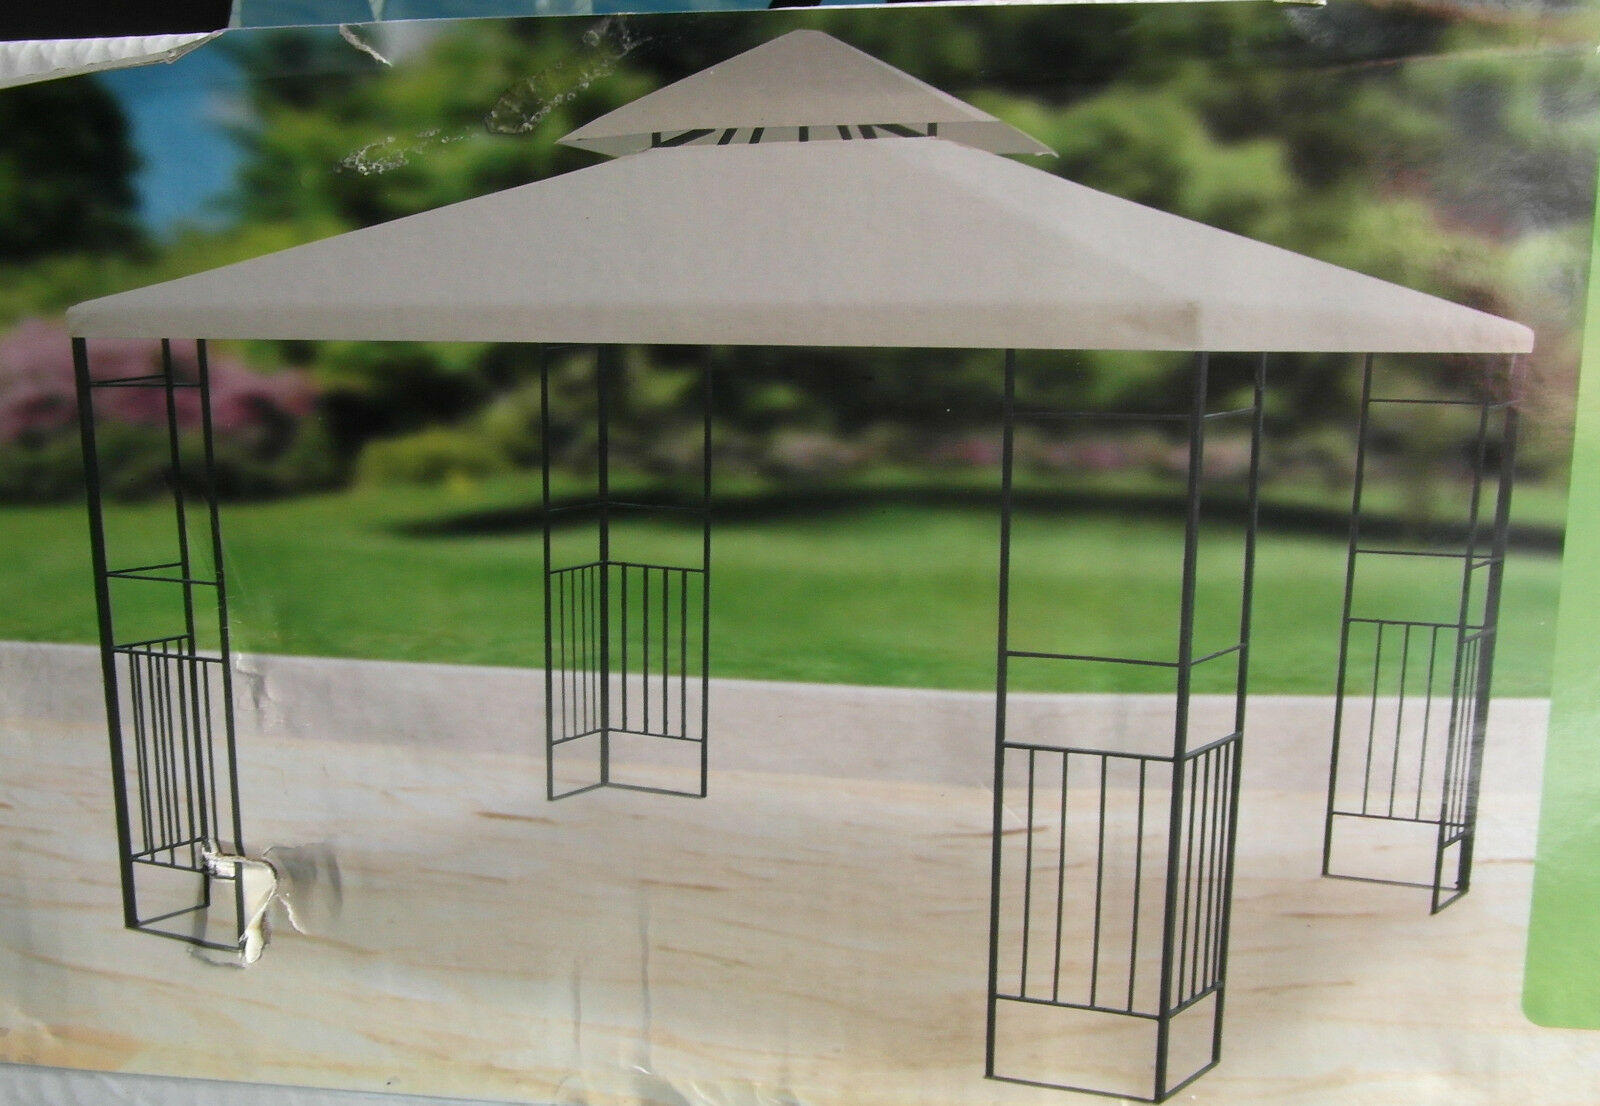 metall garten pavillon mit haubenl ftung metall pavillon neu ovp ebay. Black Bedroom Furniture Sets. Home Design Ideas